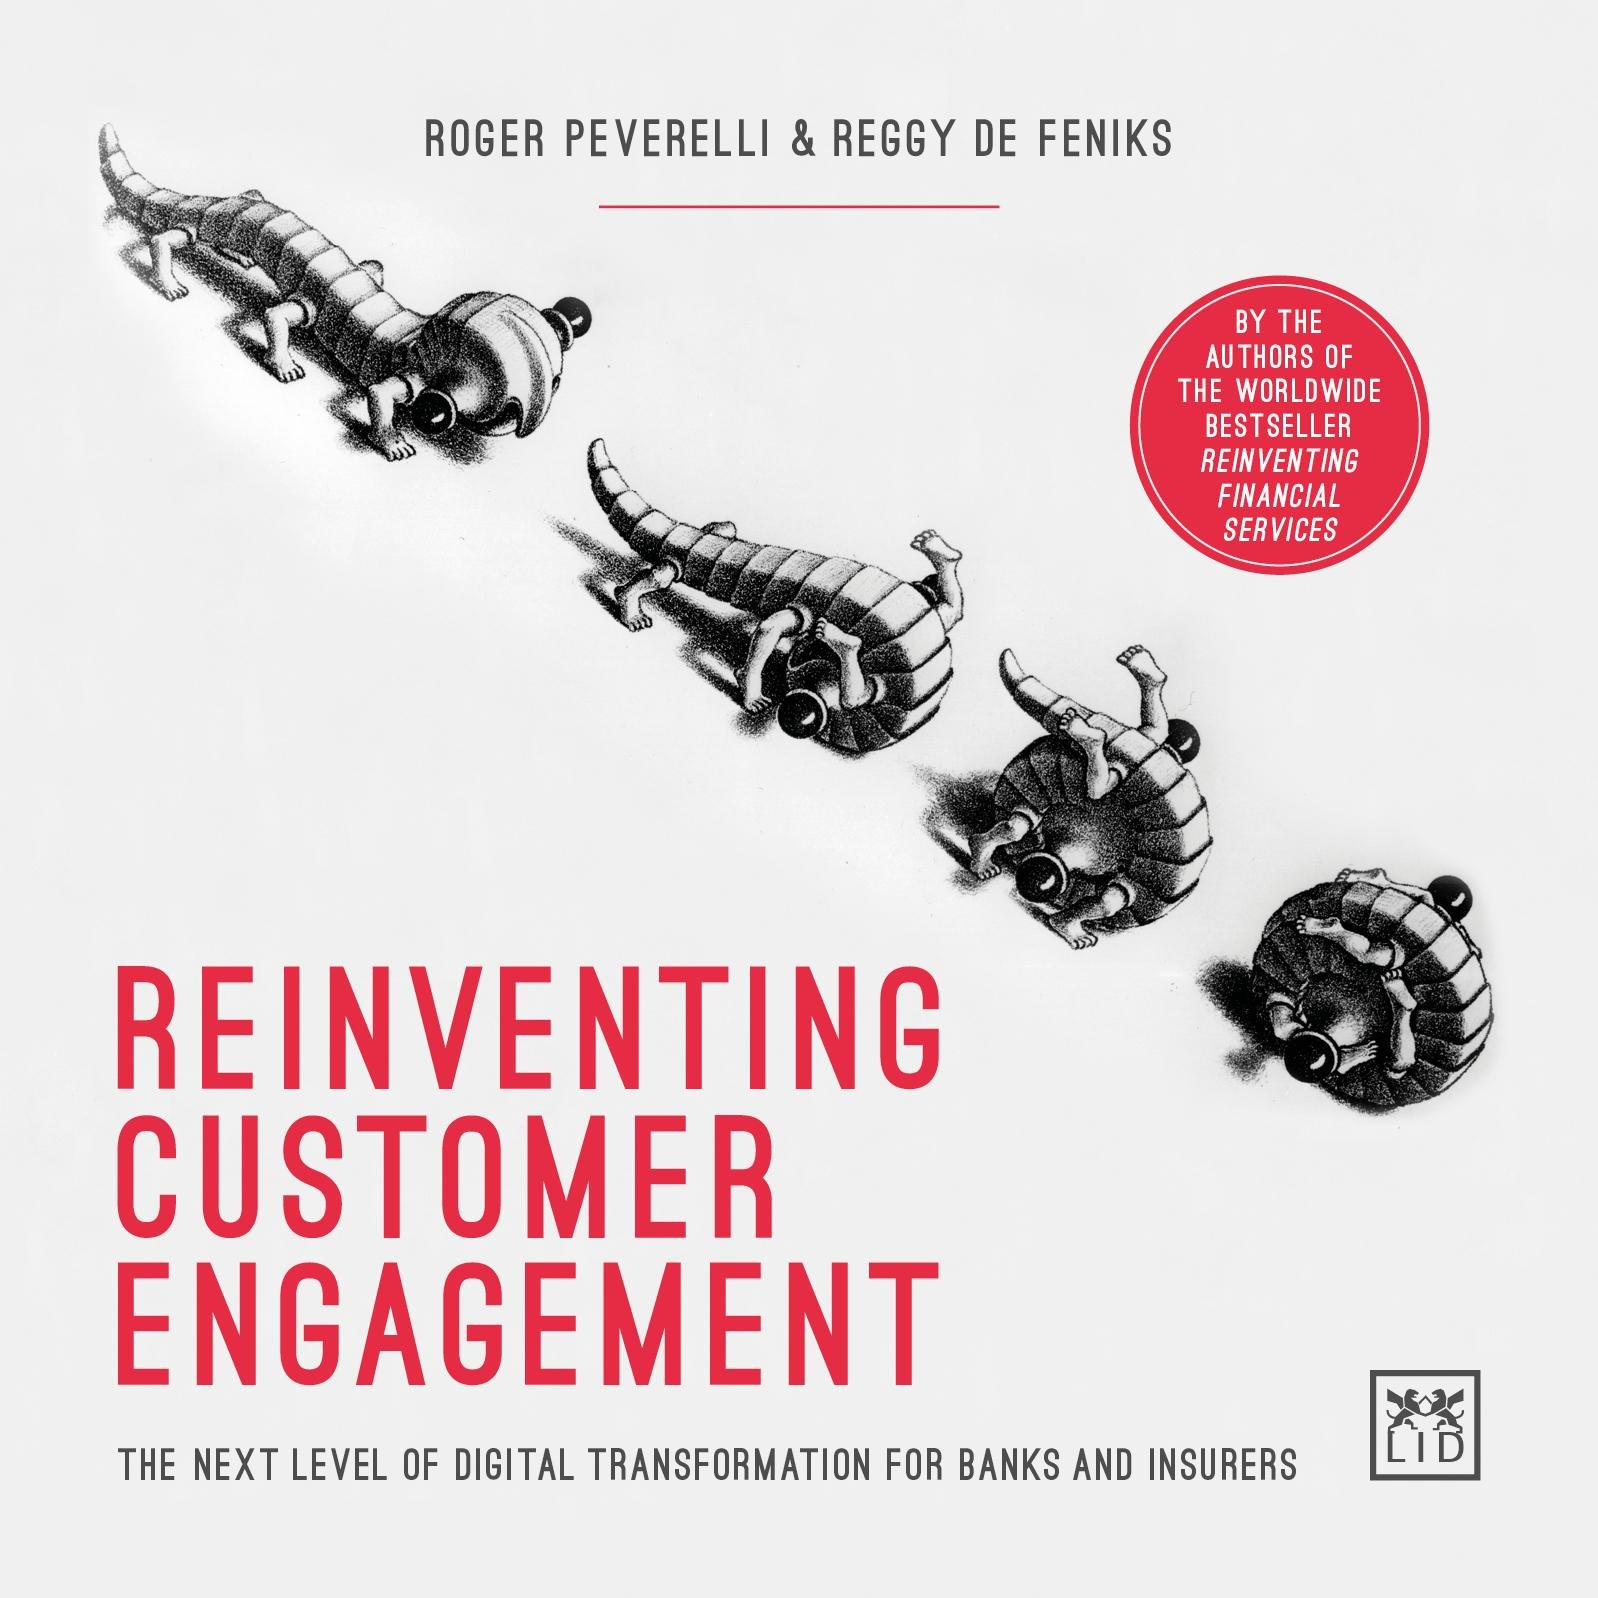 Reinventing Customer Engagement: The Next Level of Digital Transformation for Banks and Insurers